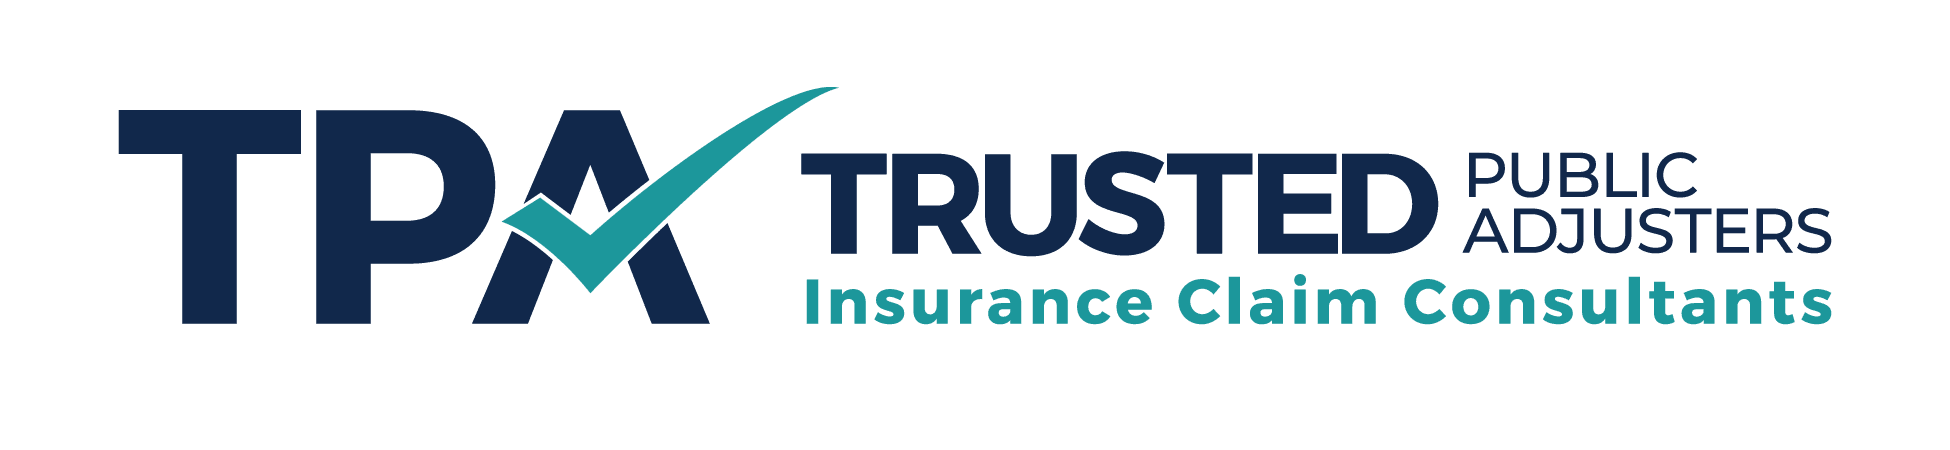 Trusted Public Adjusters of Florida